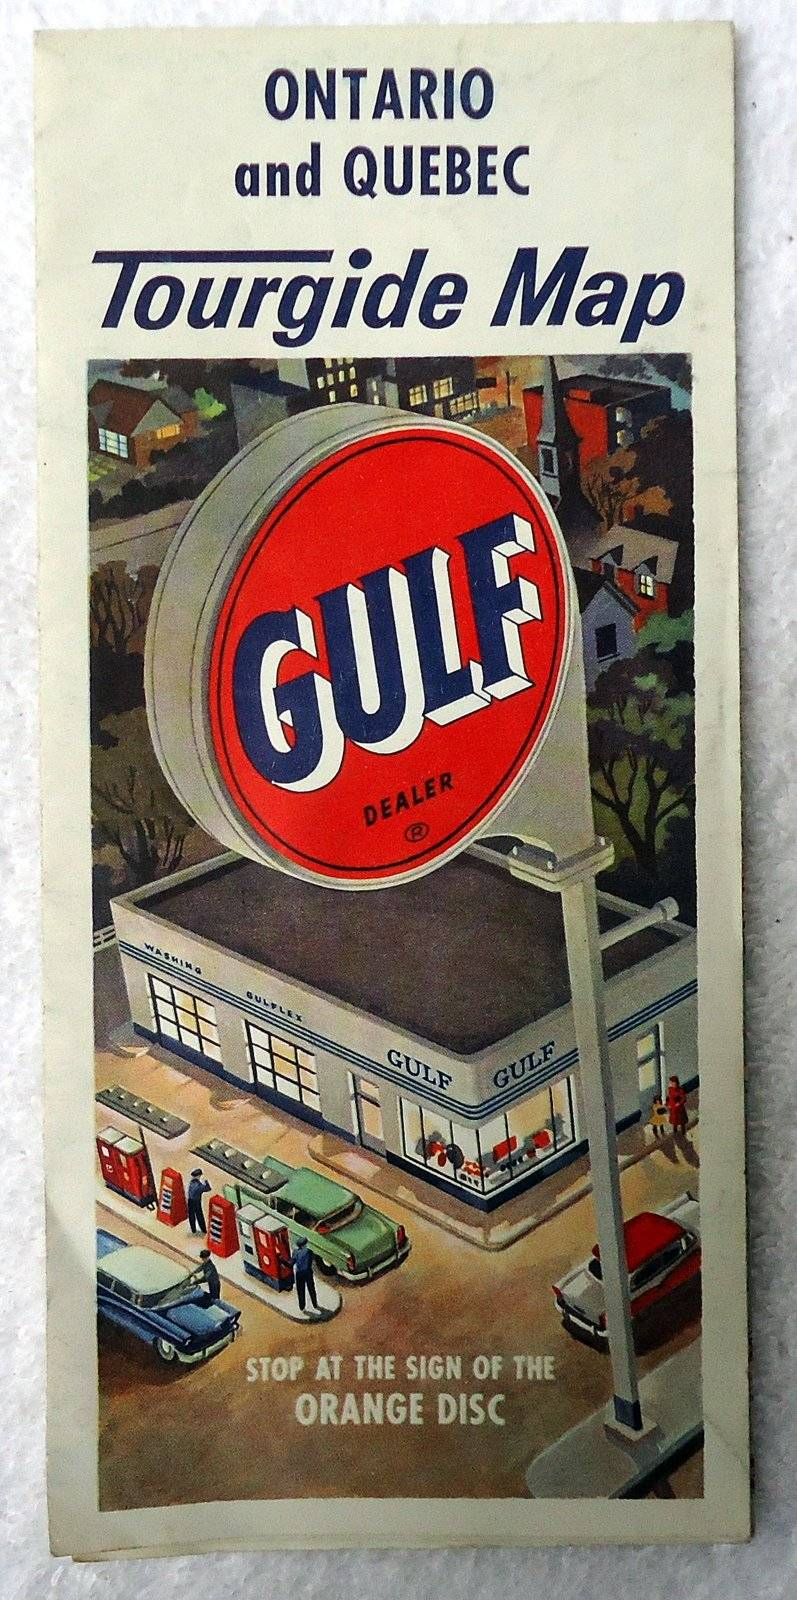 Details about 1950's GULF OIL HIGHWAY TRAVEL TOURGIDE MAP OF ONTARIO on belgium highway map, seattle highway map, portland highway map, france highway map, japan highway map, england highway map, italy highway map, miami highway map, appalachian mountains highway map, cincinnati highway map, north america highway map, new zealand highway map, romania highway map, portugal highway map, cape breton island highway map, paris highway map, delaware highway map, houston highway map, nashville highway map, bc highway map,